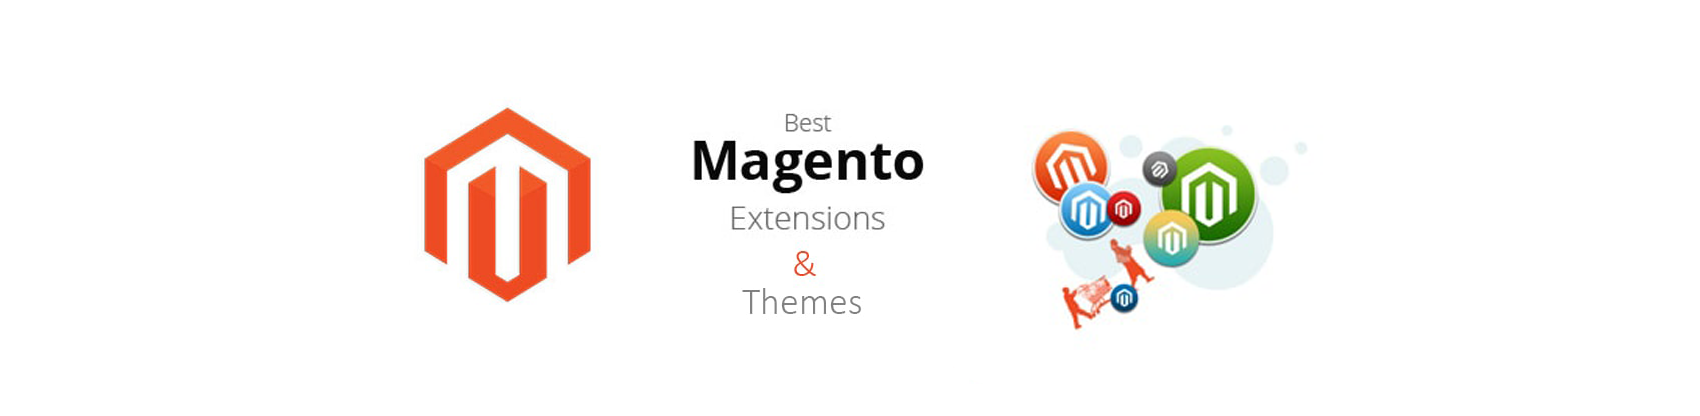 Best Magento Themes and Extensions, Why eStore Needs them?